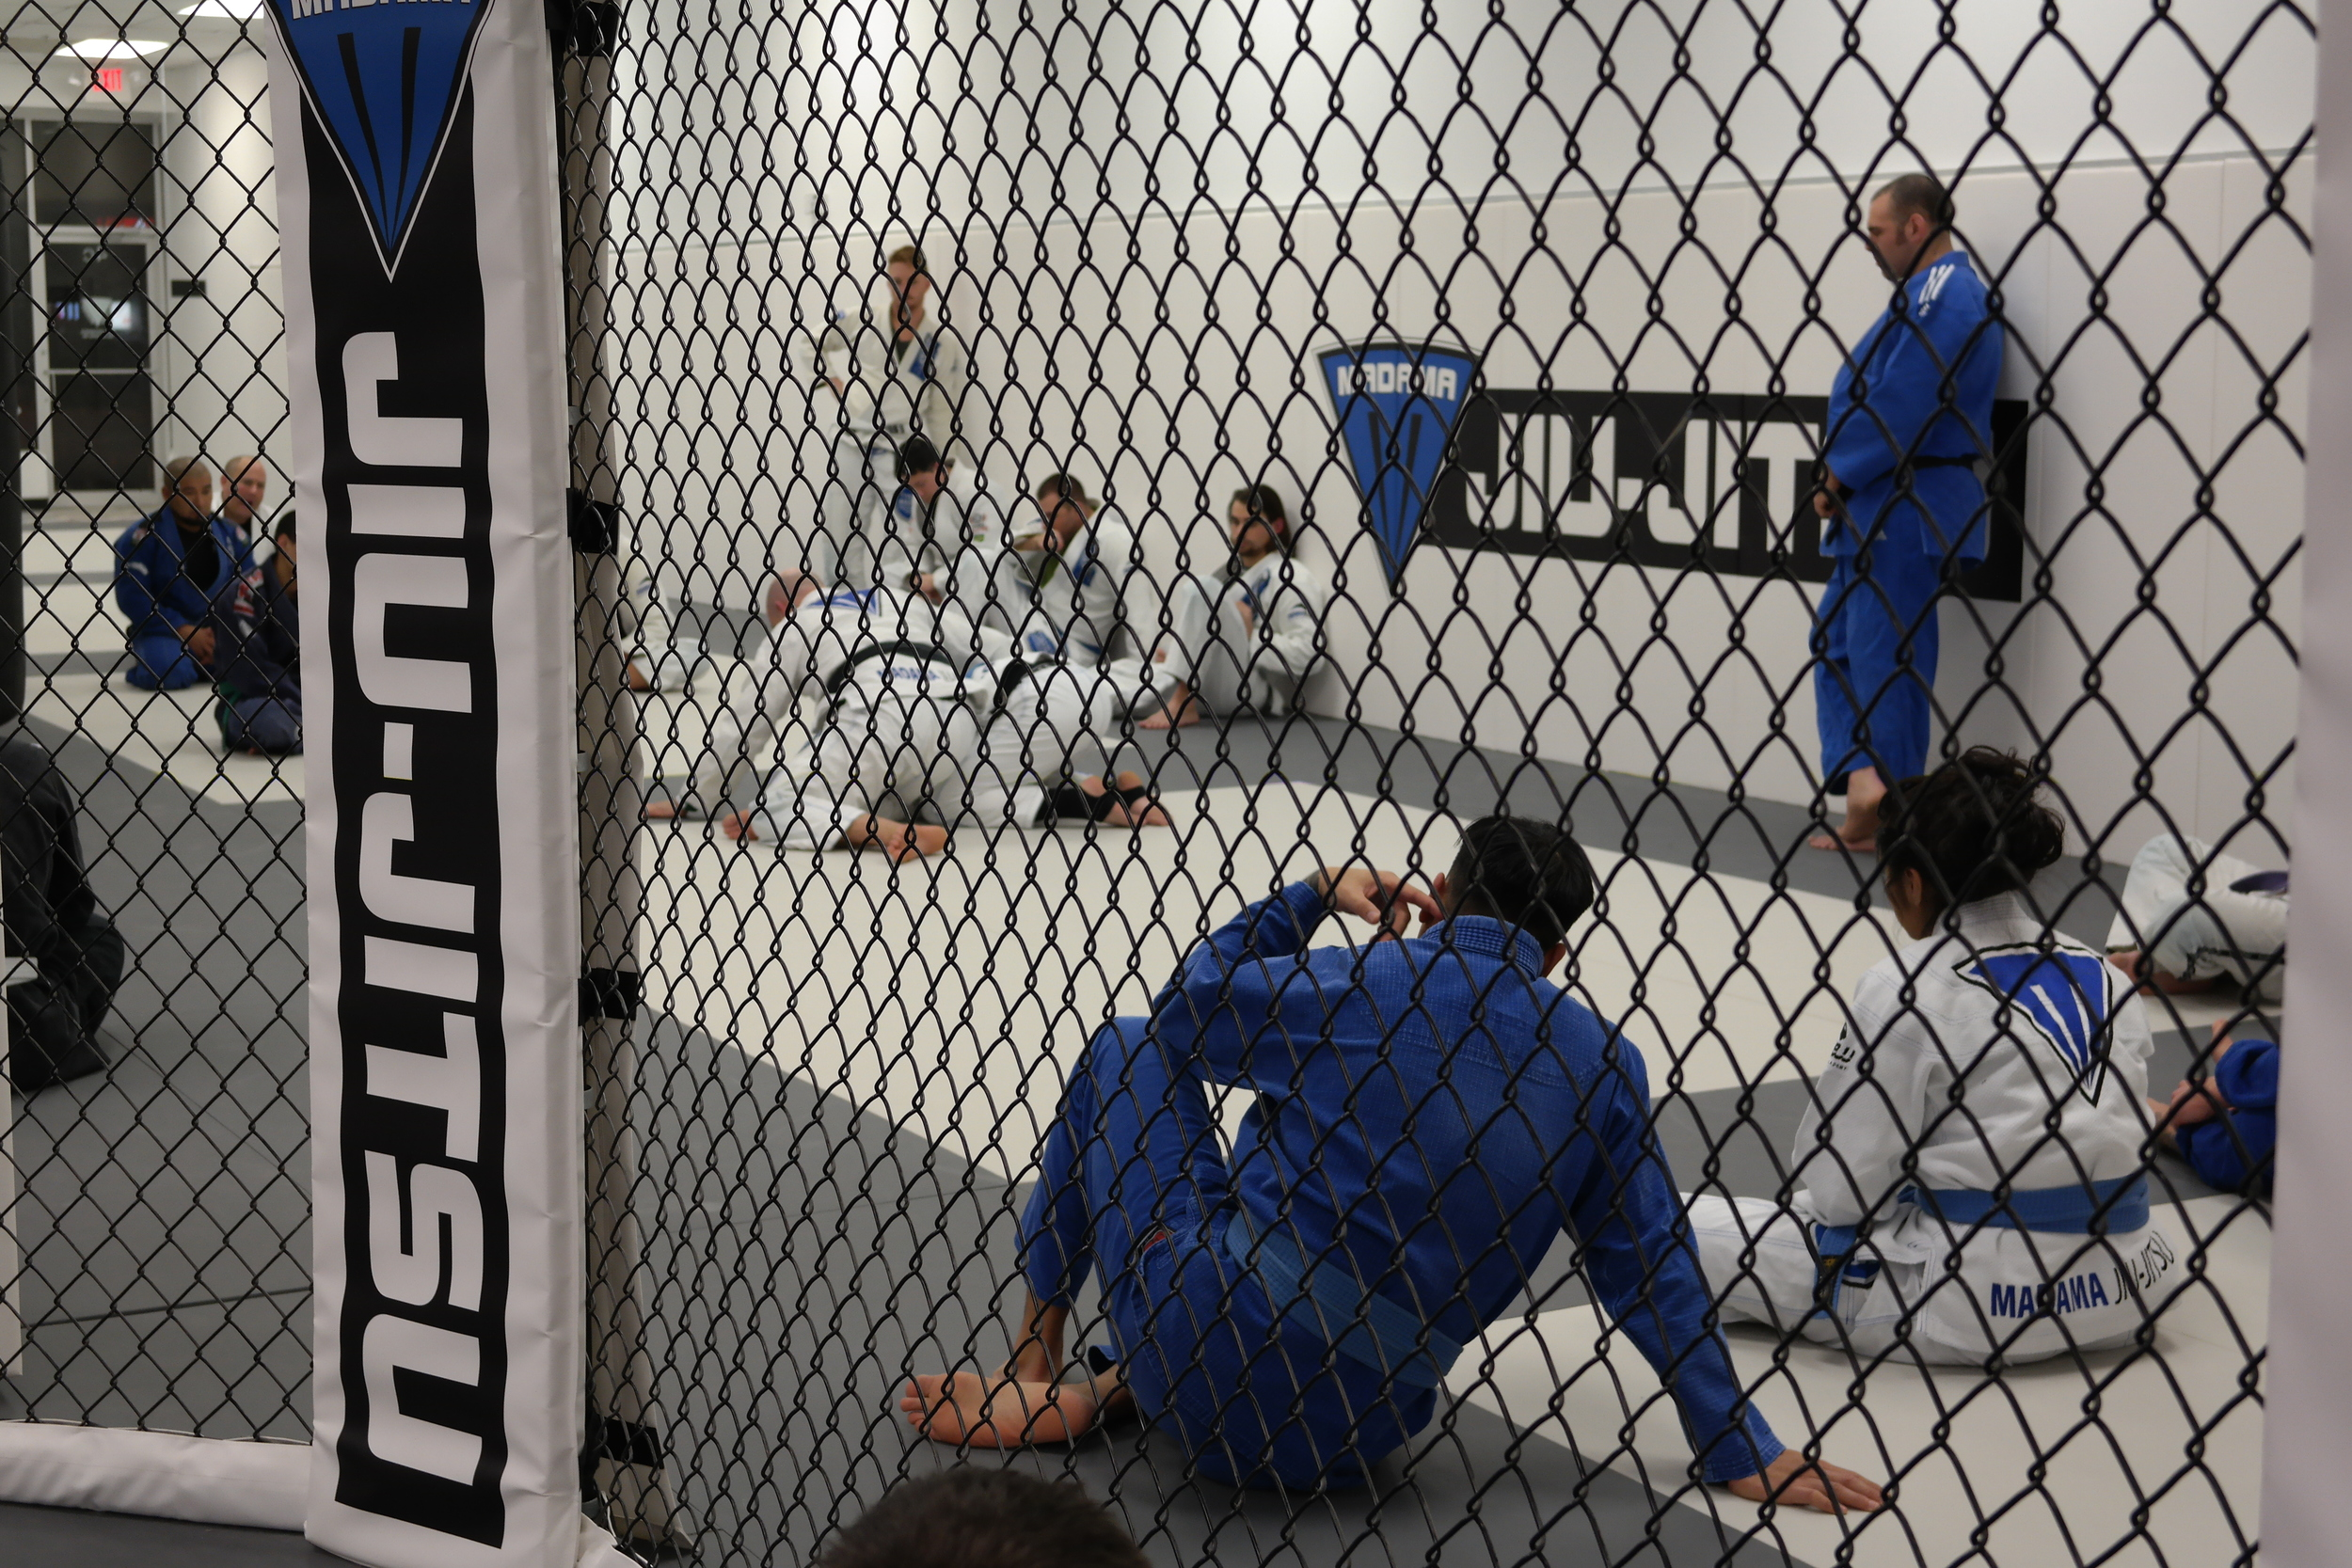 A View From Inside the Cage